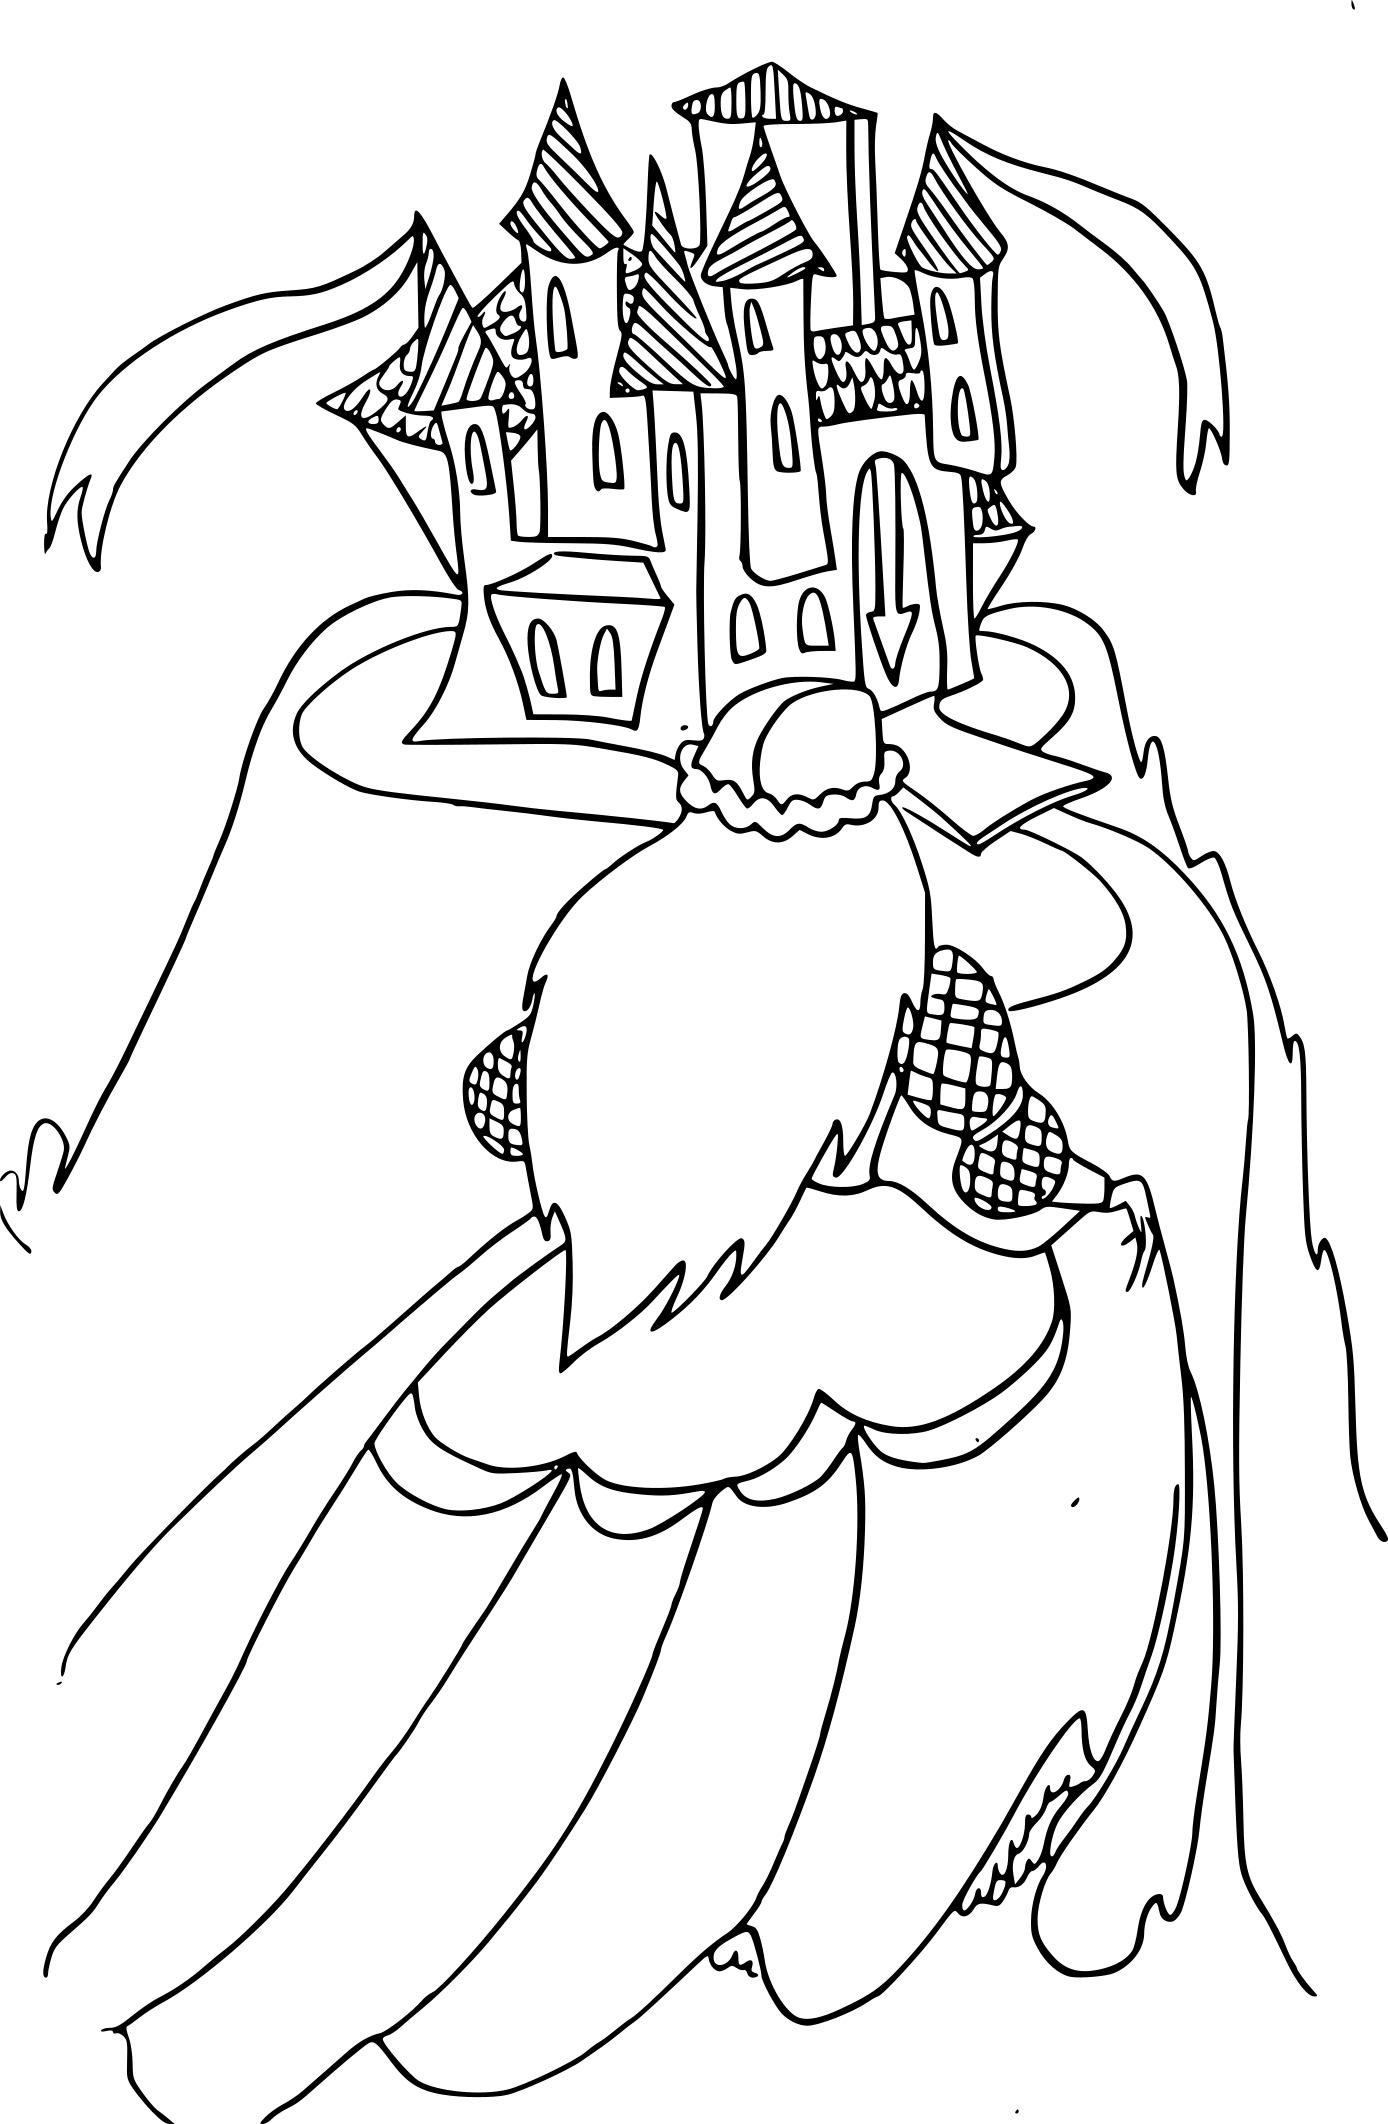 Coloriage chateau princesse